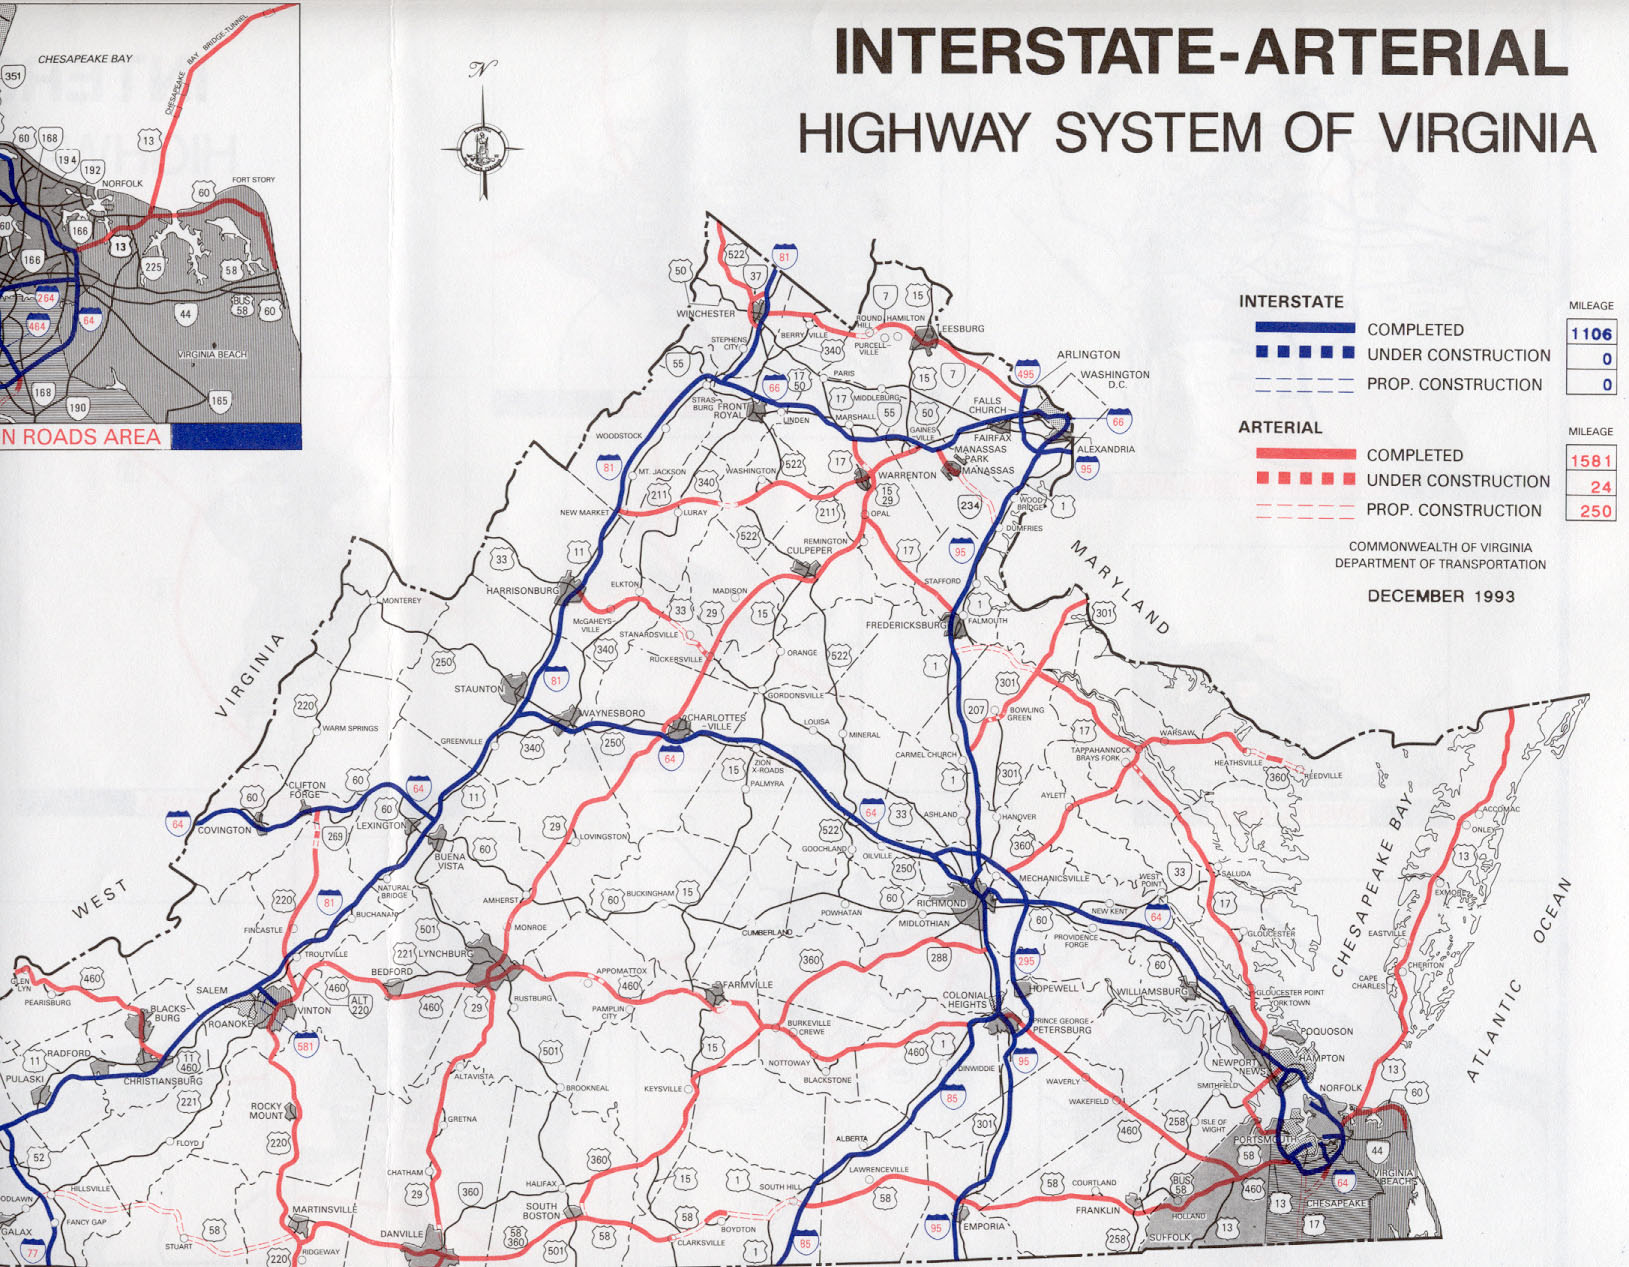 Arterial Highway System in Virginia